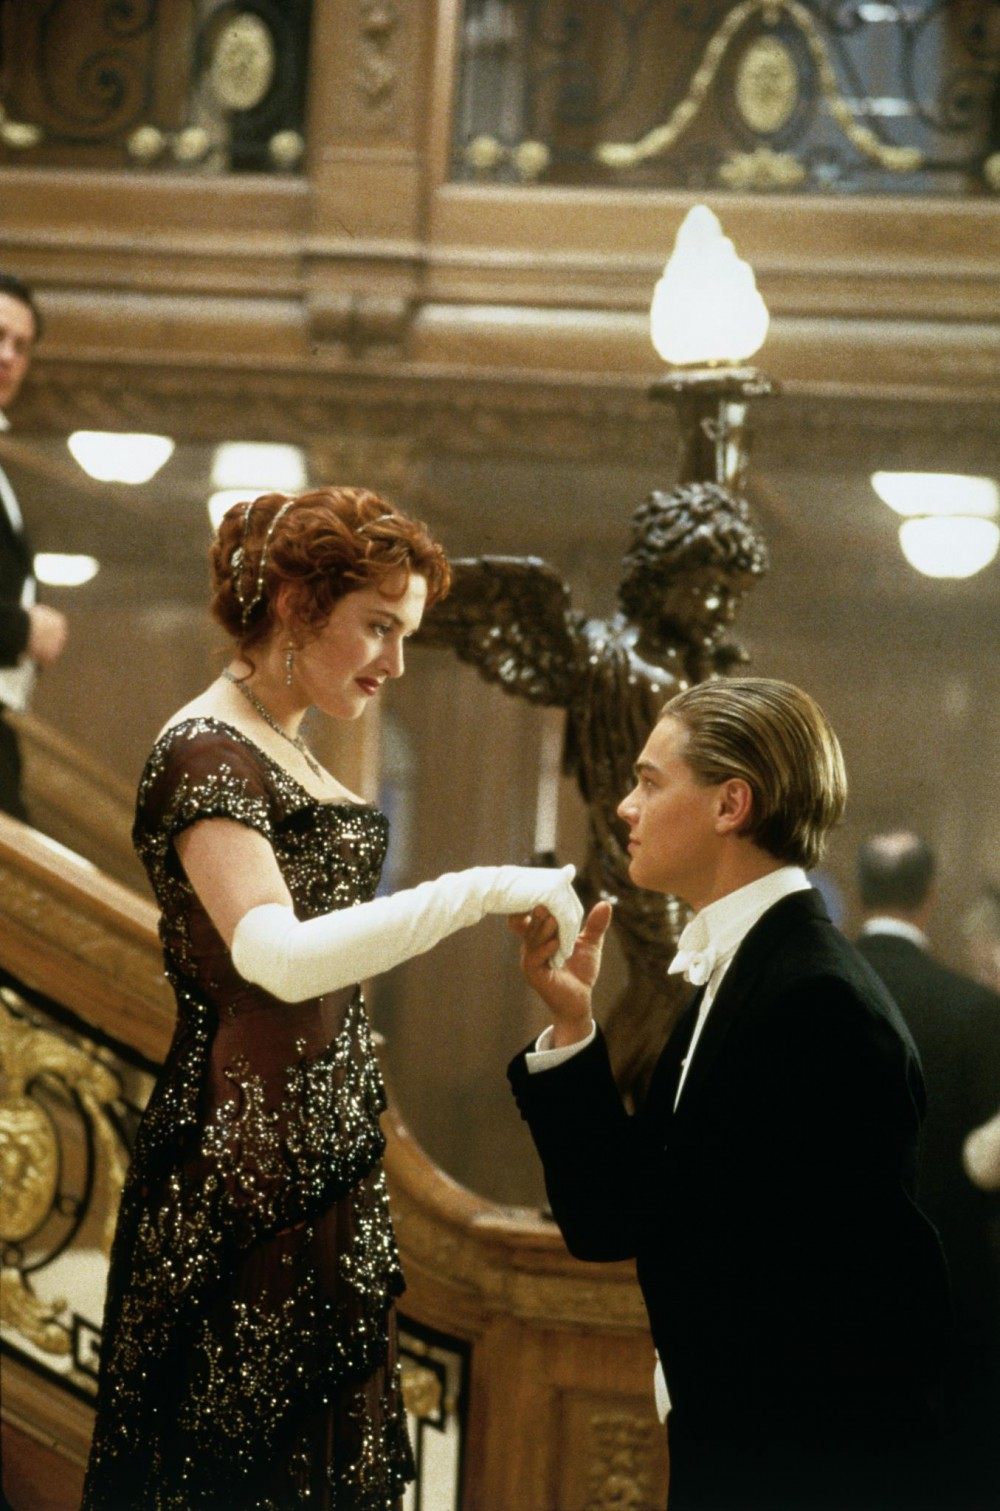 Best 1000 Dance of the bride of Christ images on Pinterest 20th century fox paramount pictures titanic